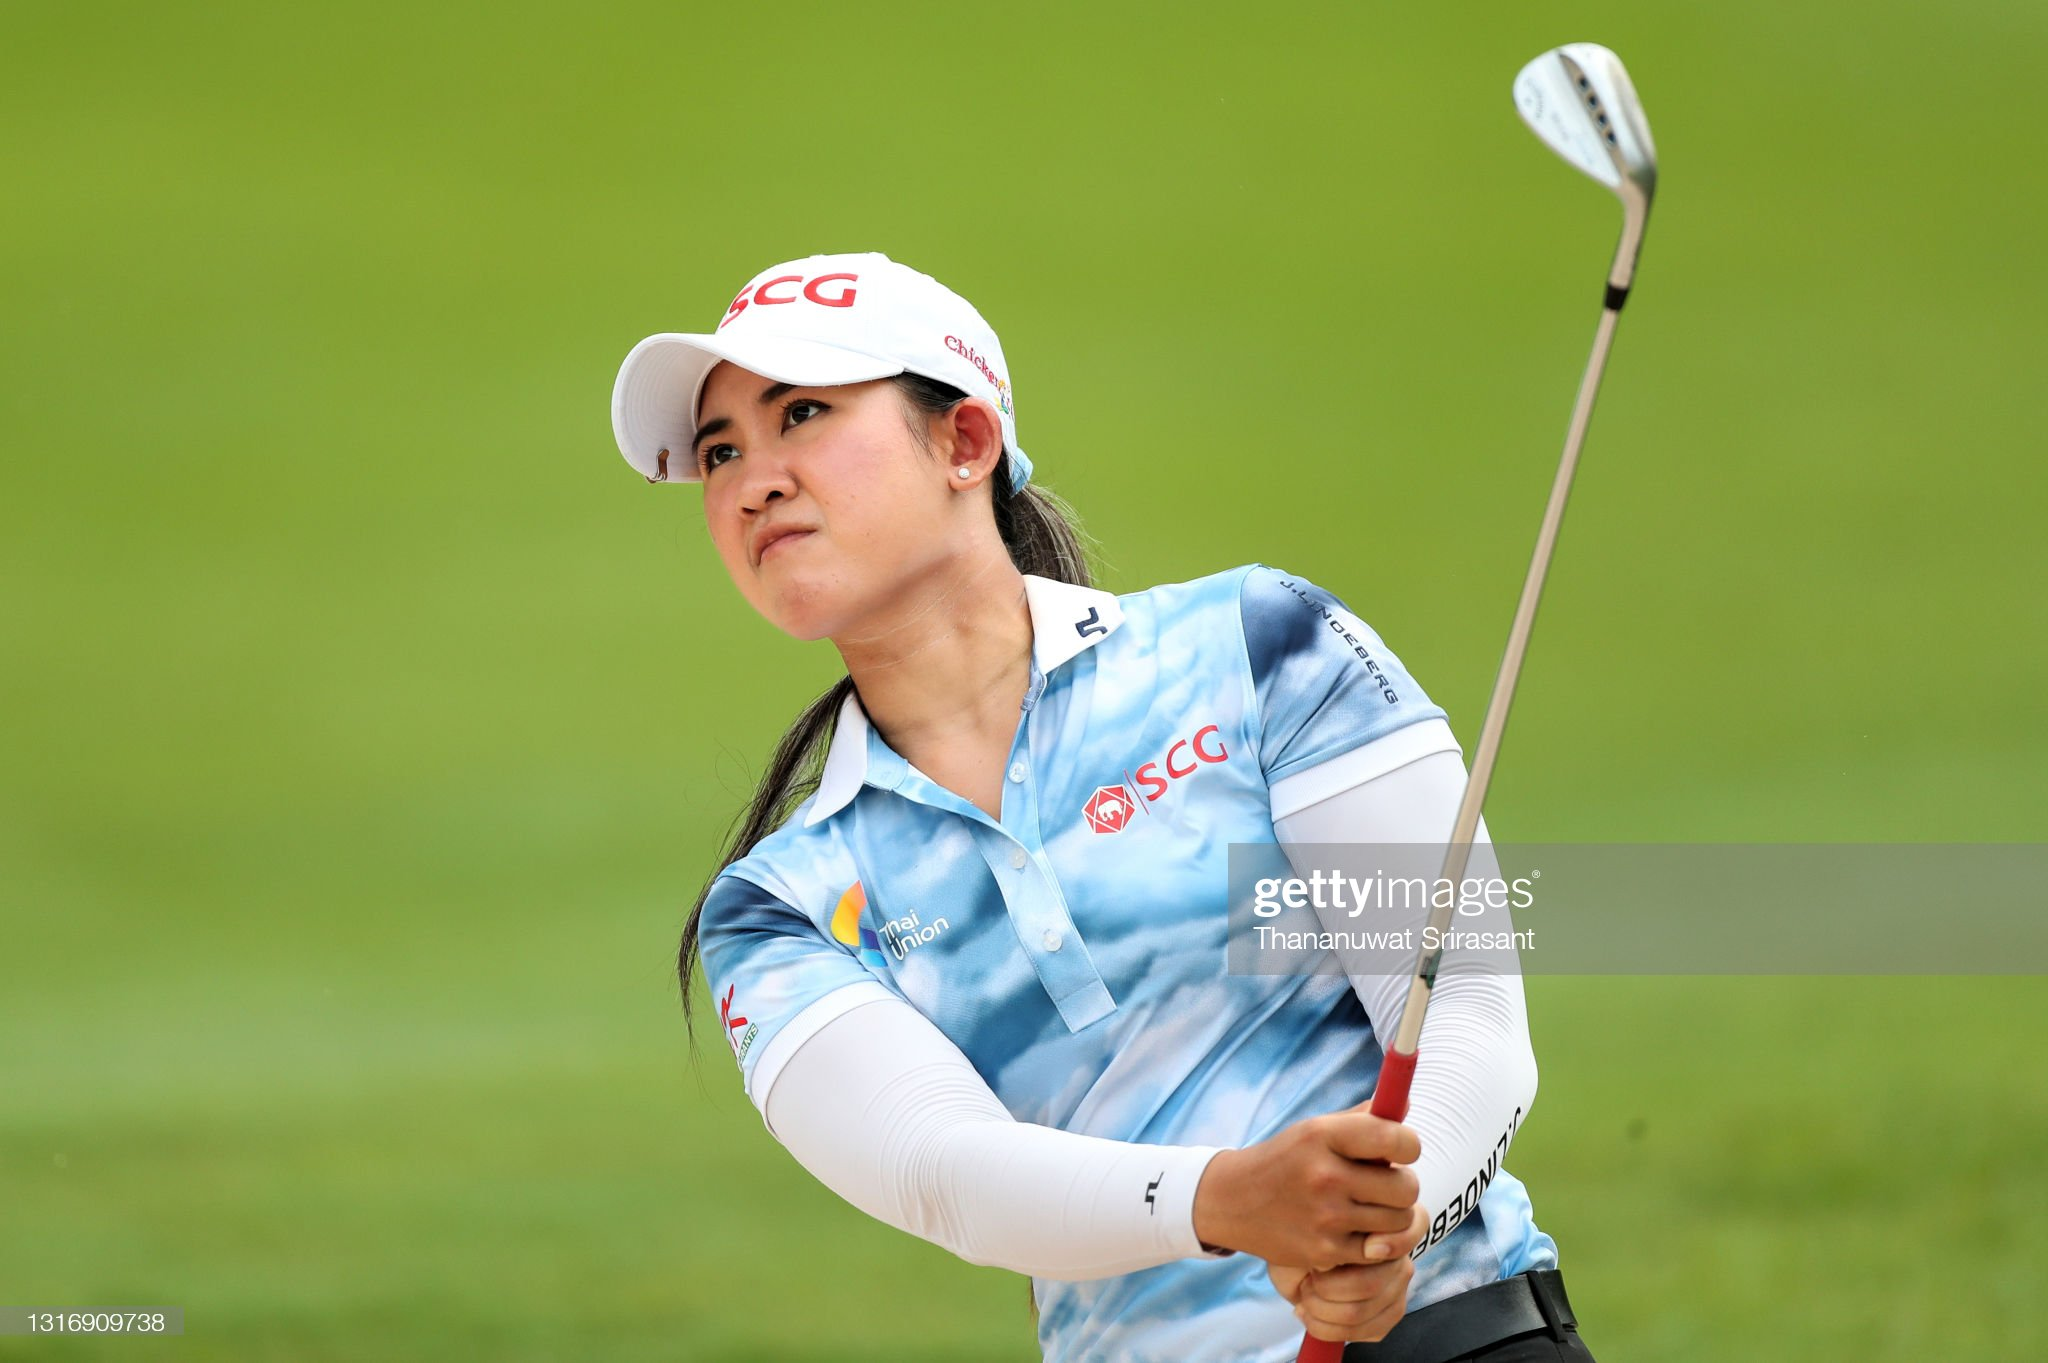 https://media.gettyimages.com/photos/pajaree-anannarukarn-of-thailand-plays-her-shot-during-the-third-of-picture-id1316909738?s=2048x2048